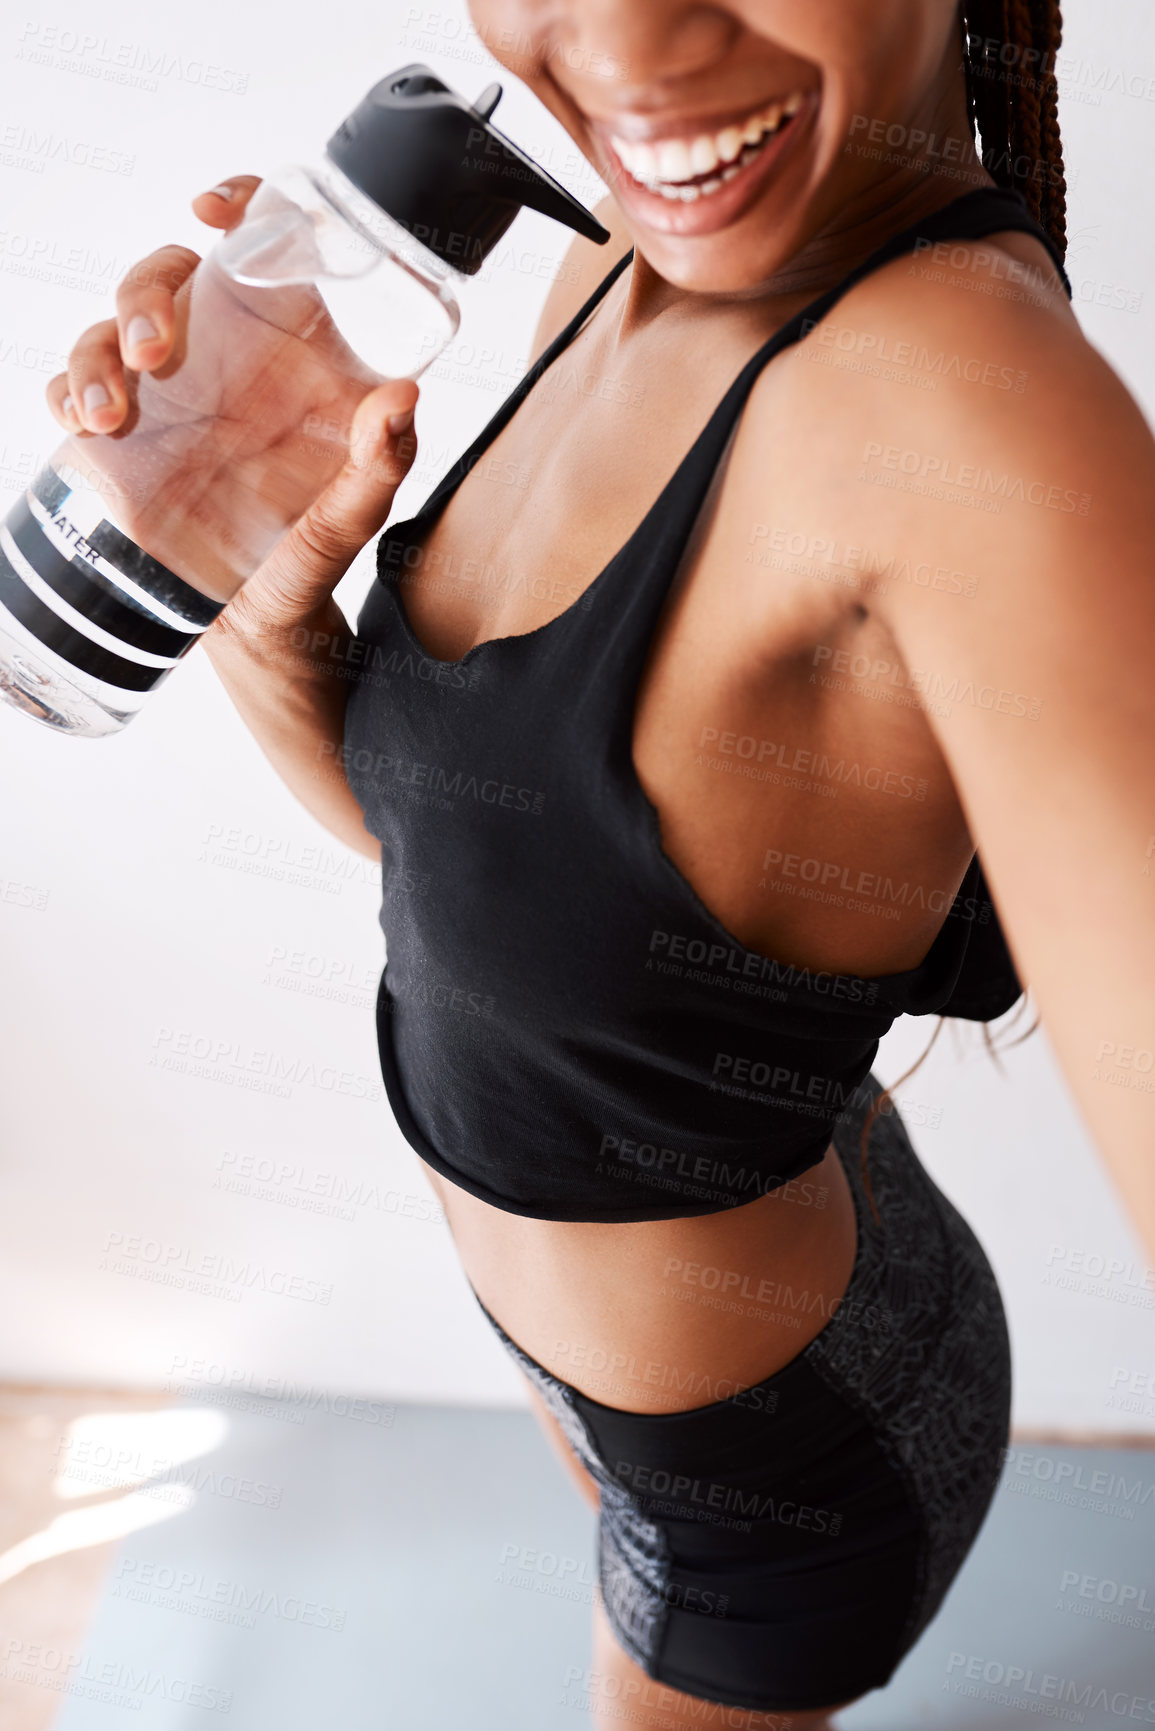 Buy stock photo Selfie view of a woman holding her water bottle while posing in her gym clothes